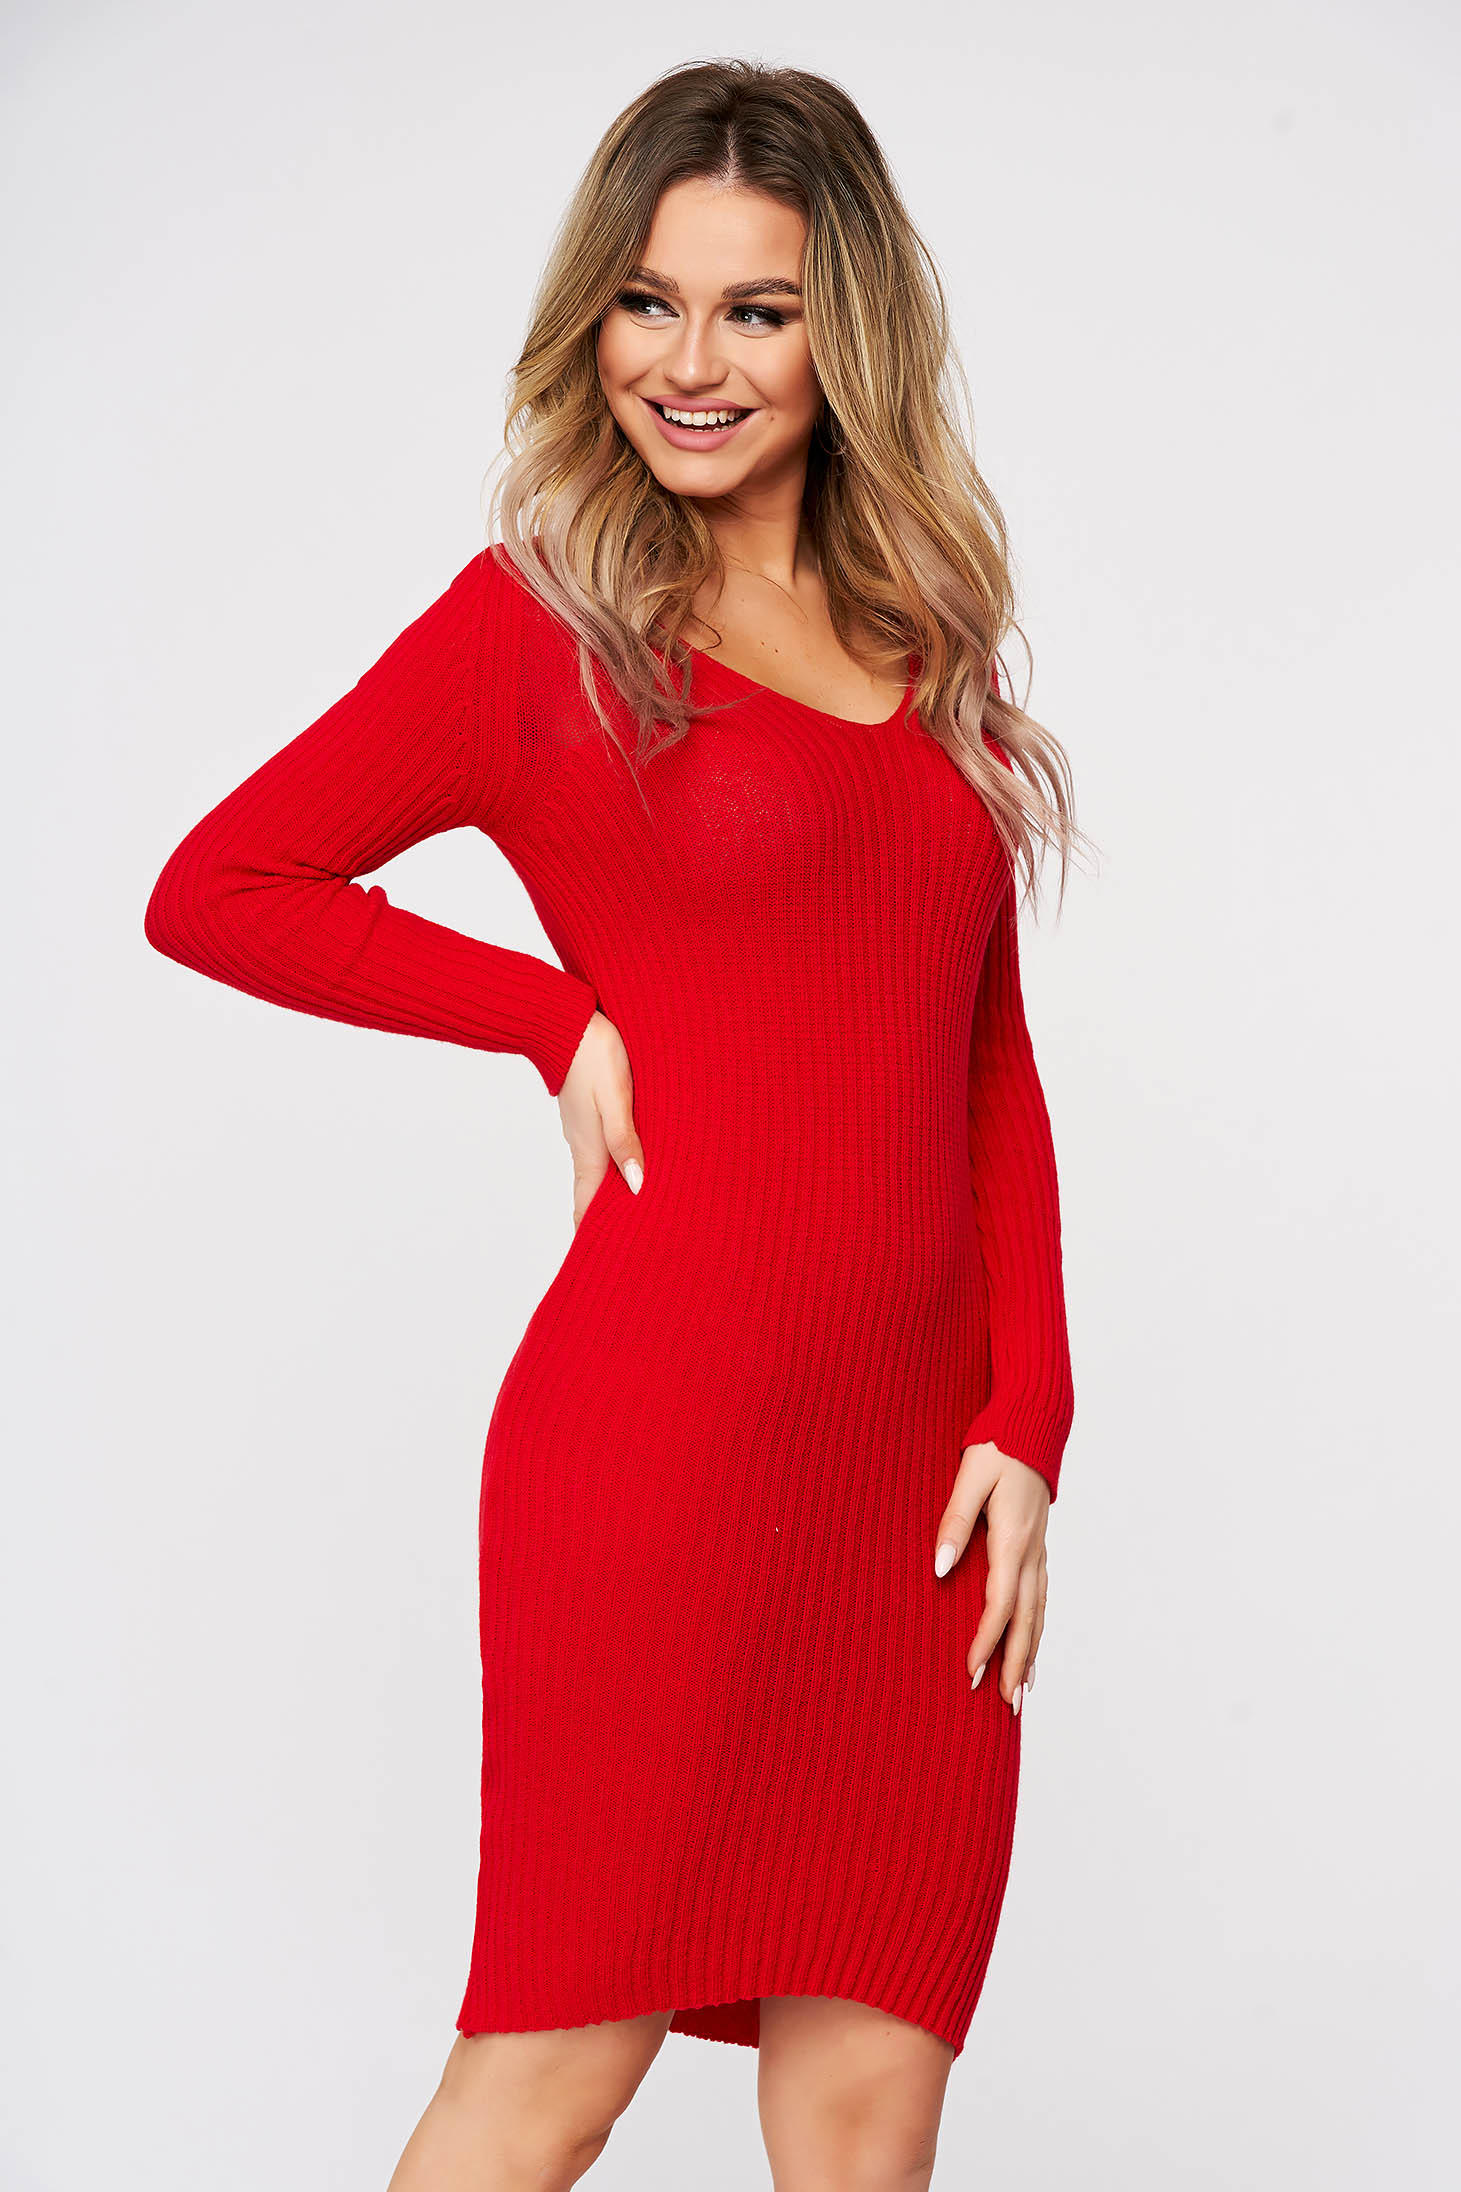 Red dress from elastic and fine fabric with v-neckline from striped fabric midi knitted